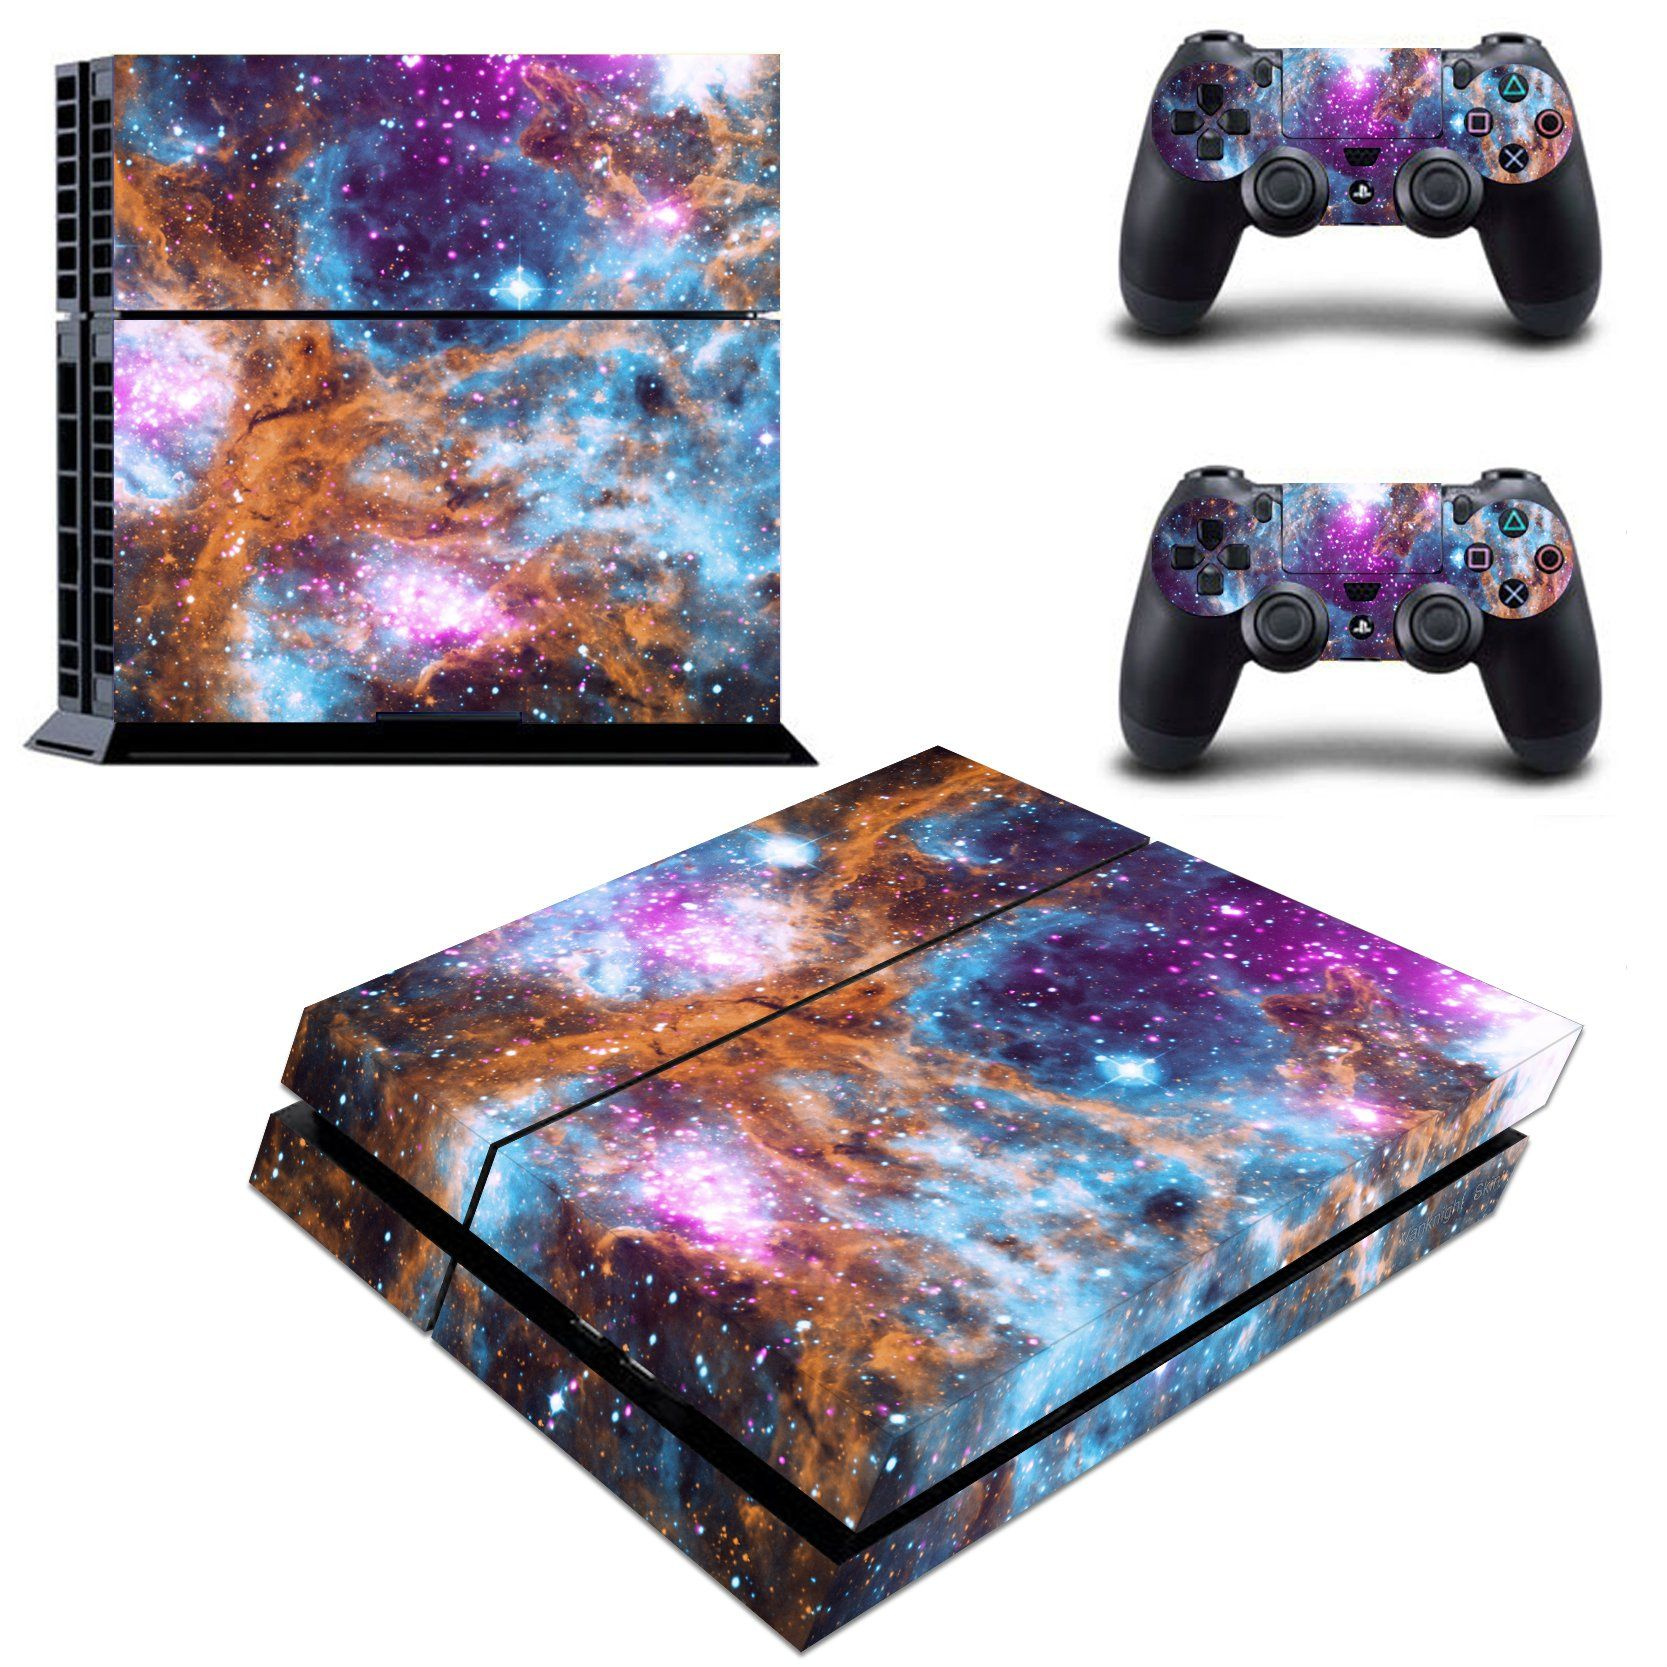 Cosmic Nebular Galaxy Ps4 Slim Console Skin Vinyl Stickers Decals Covers Wrap Video Games & Consoles